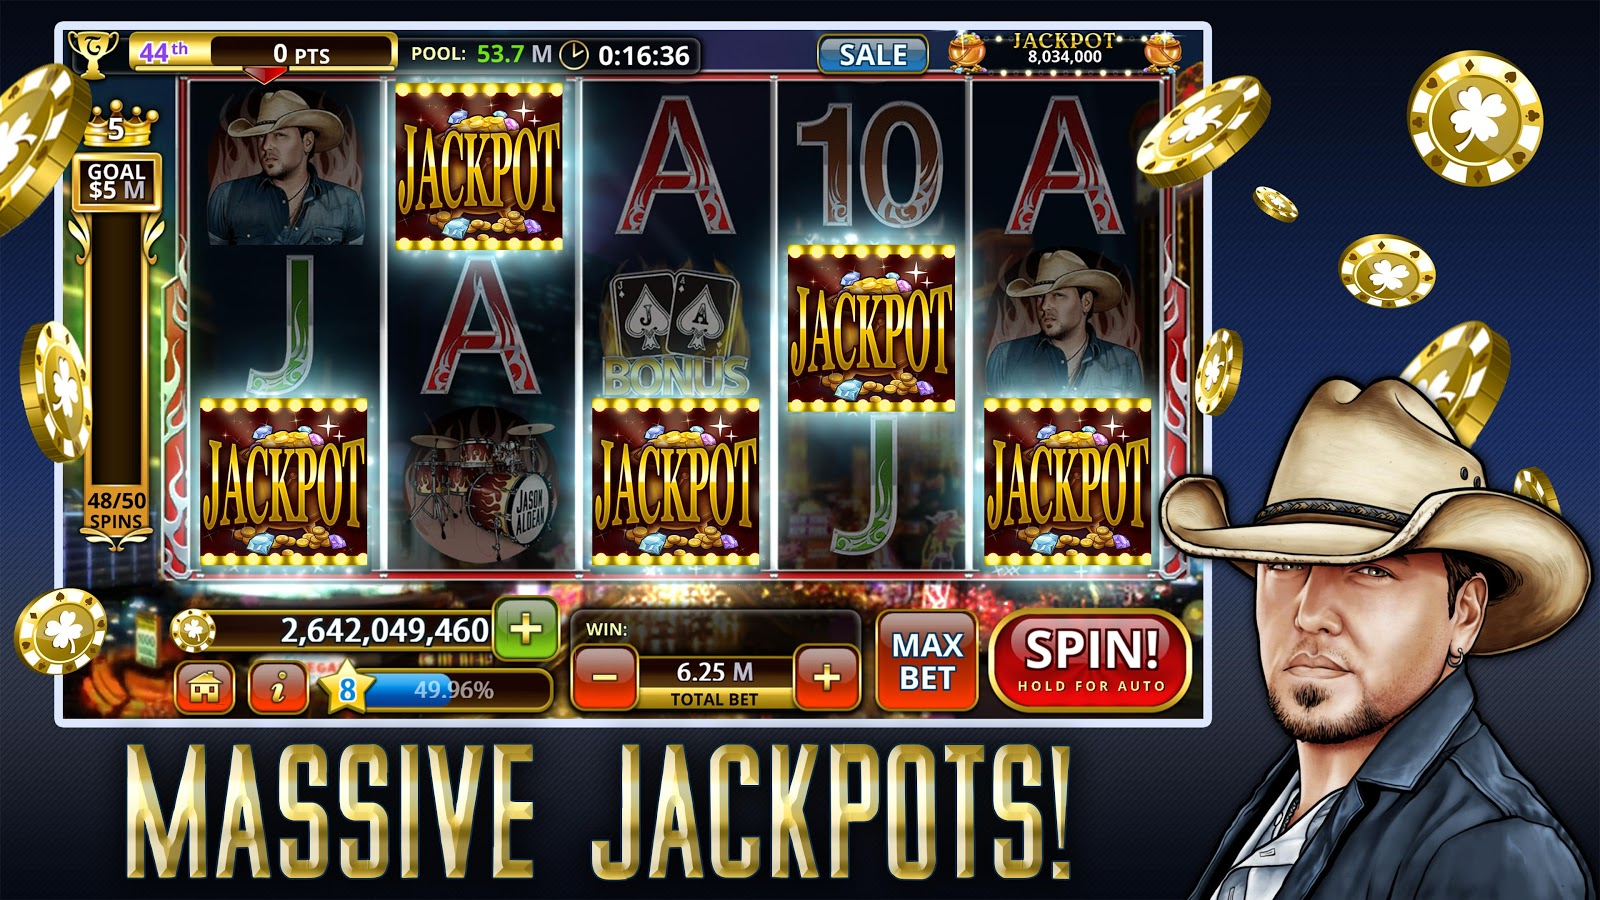 Paparazzi Slot Machine - Now Available for Free Online